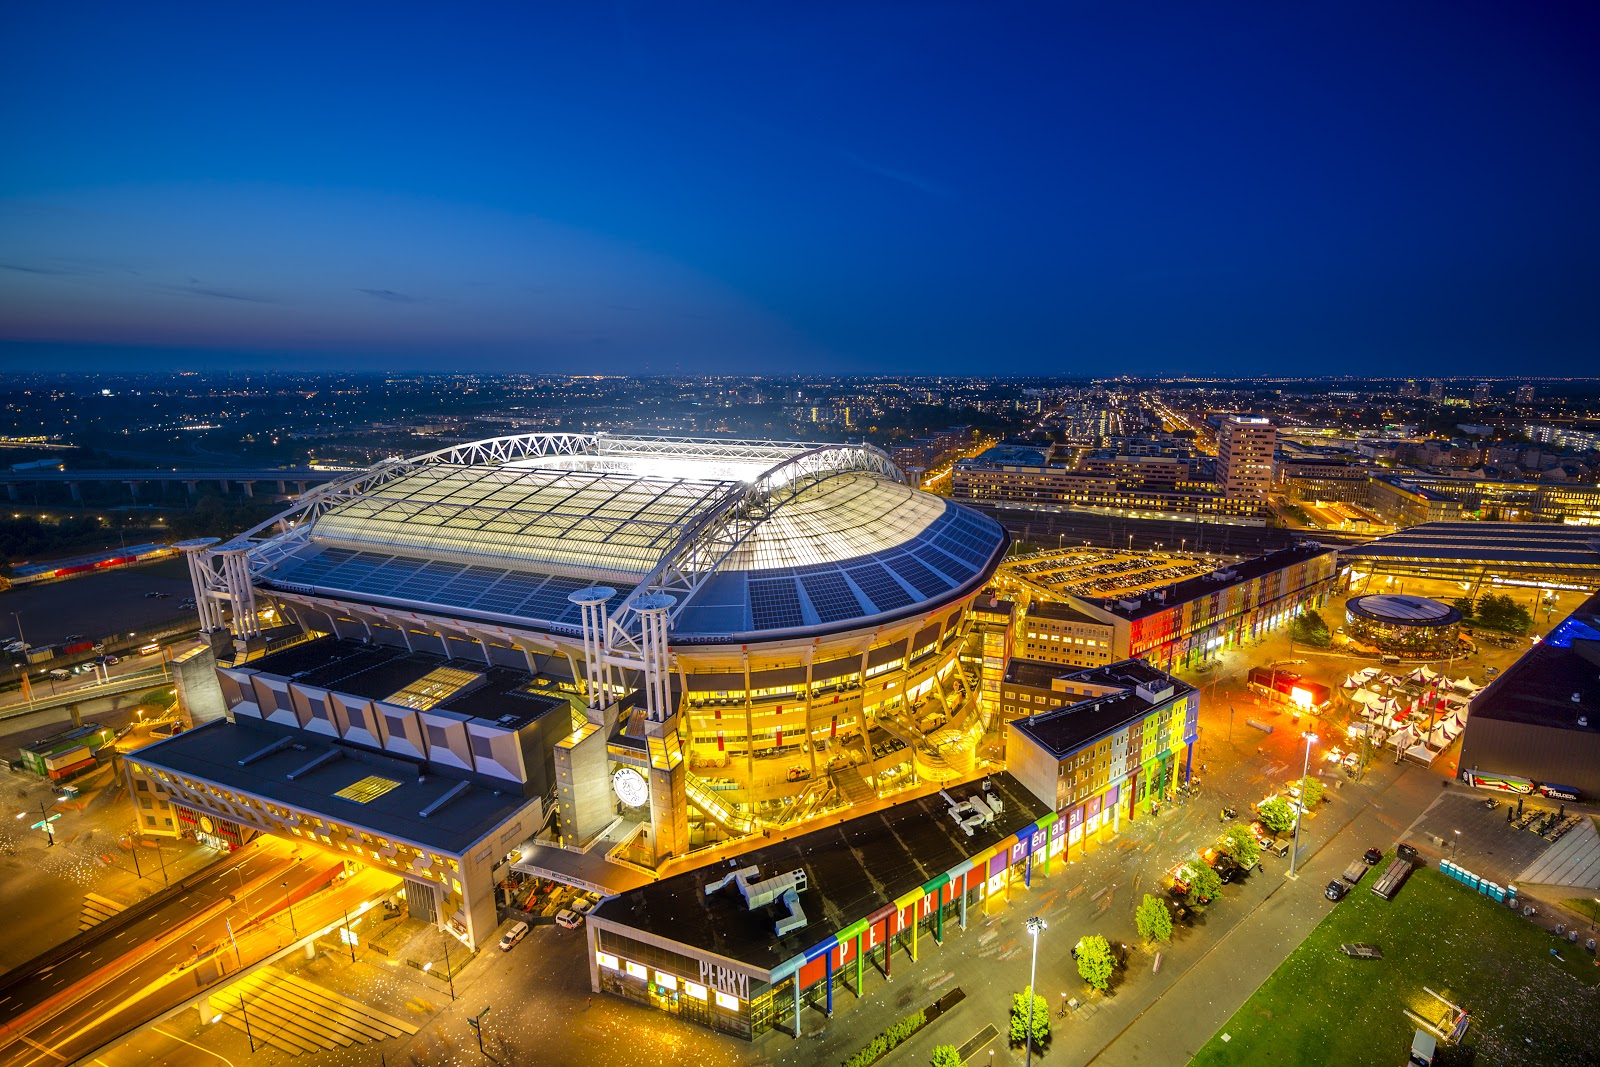 The Johan Cruijff ArenA with solar panels, from which data is used to run analyses and perform predictions on. Provided by BAM.